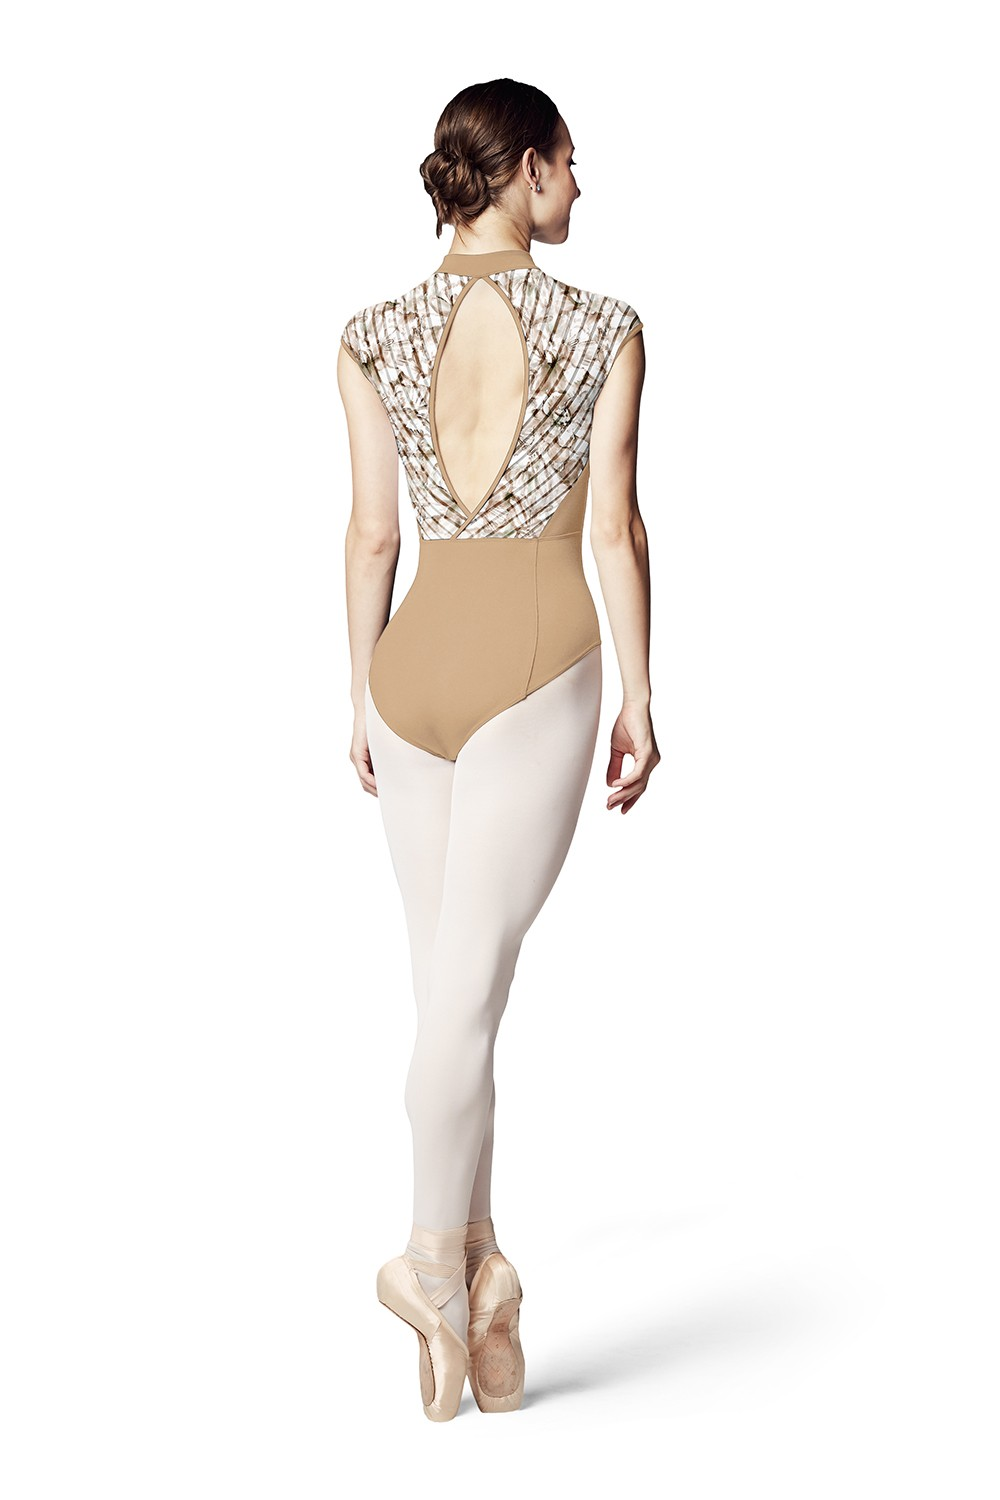 Carolein Women's Dance Leotards